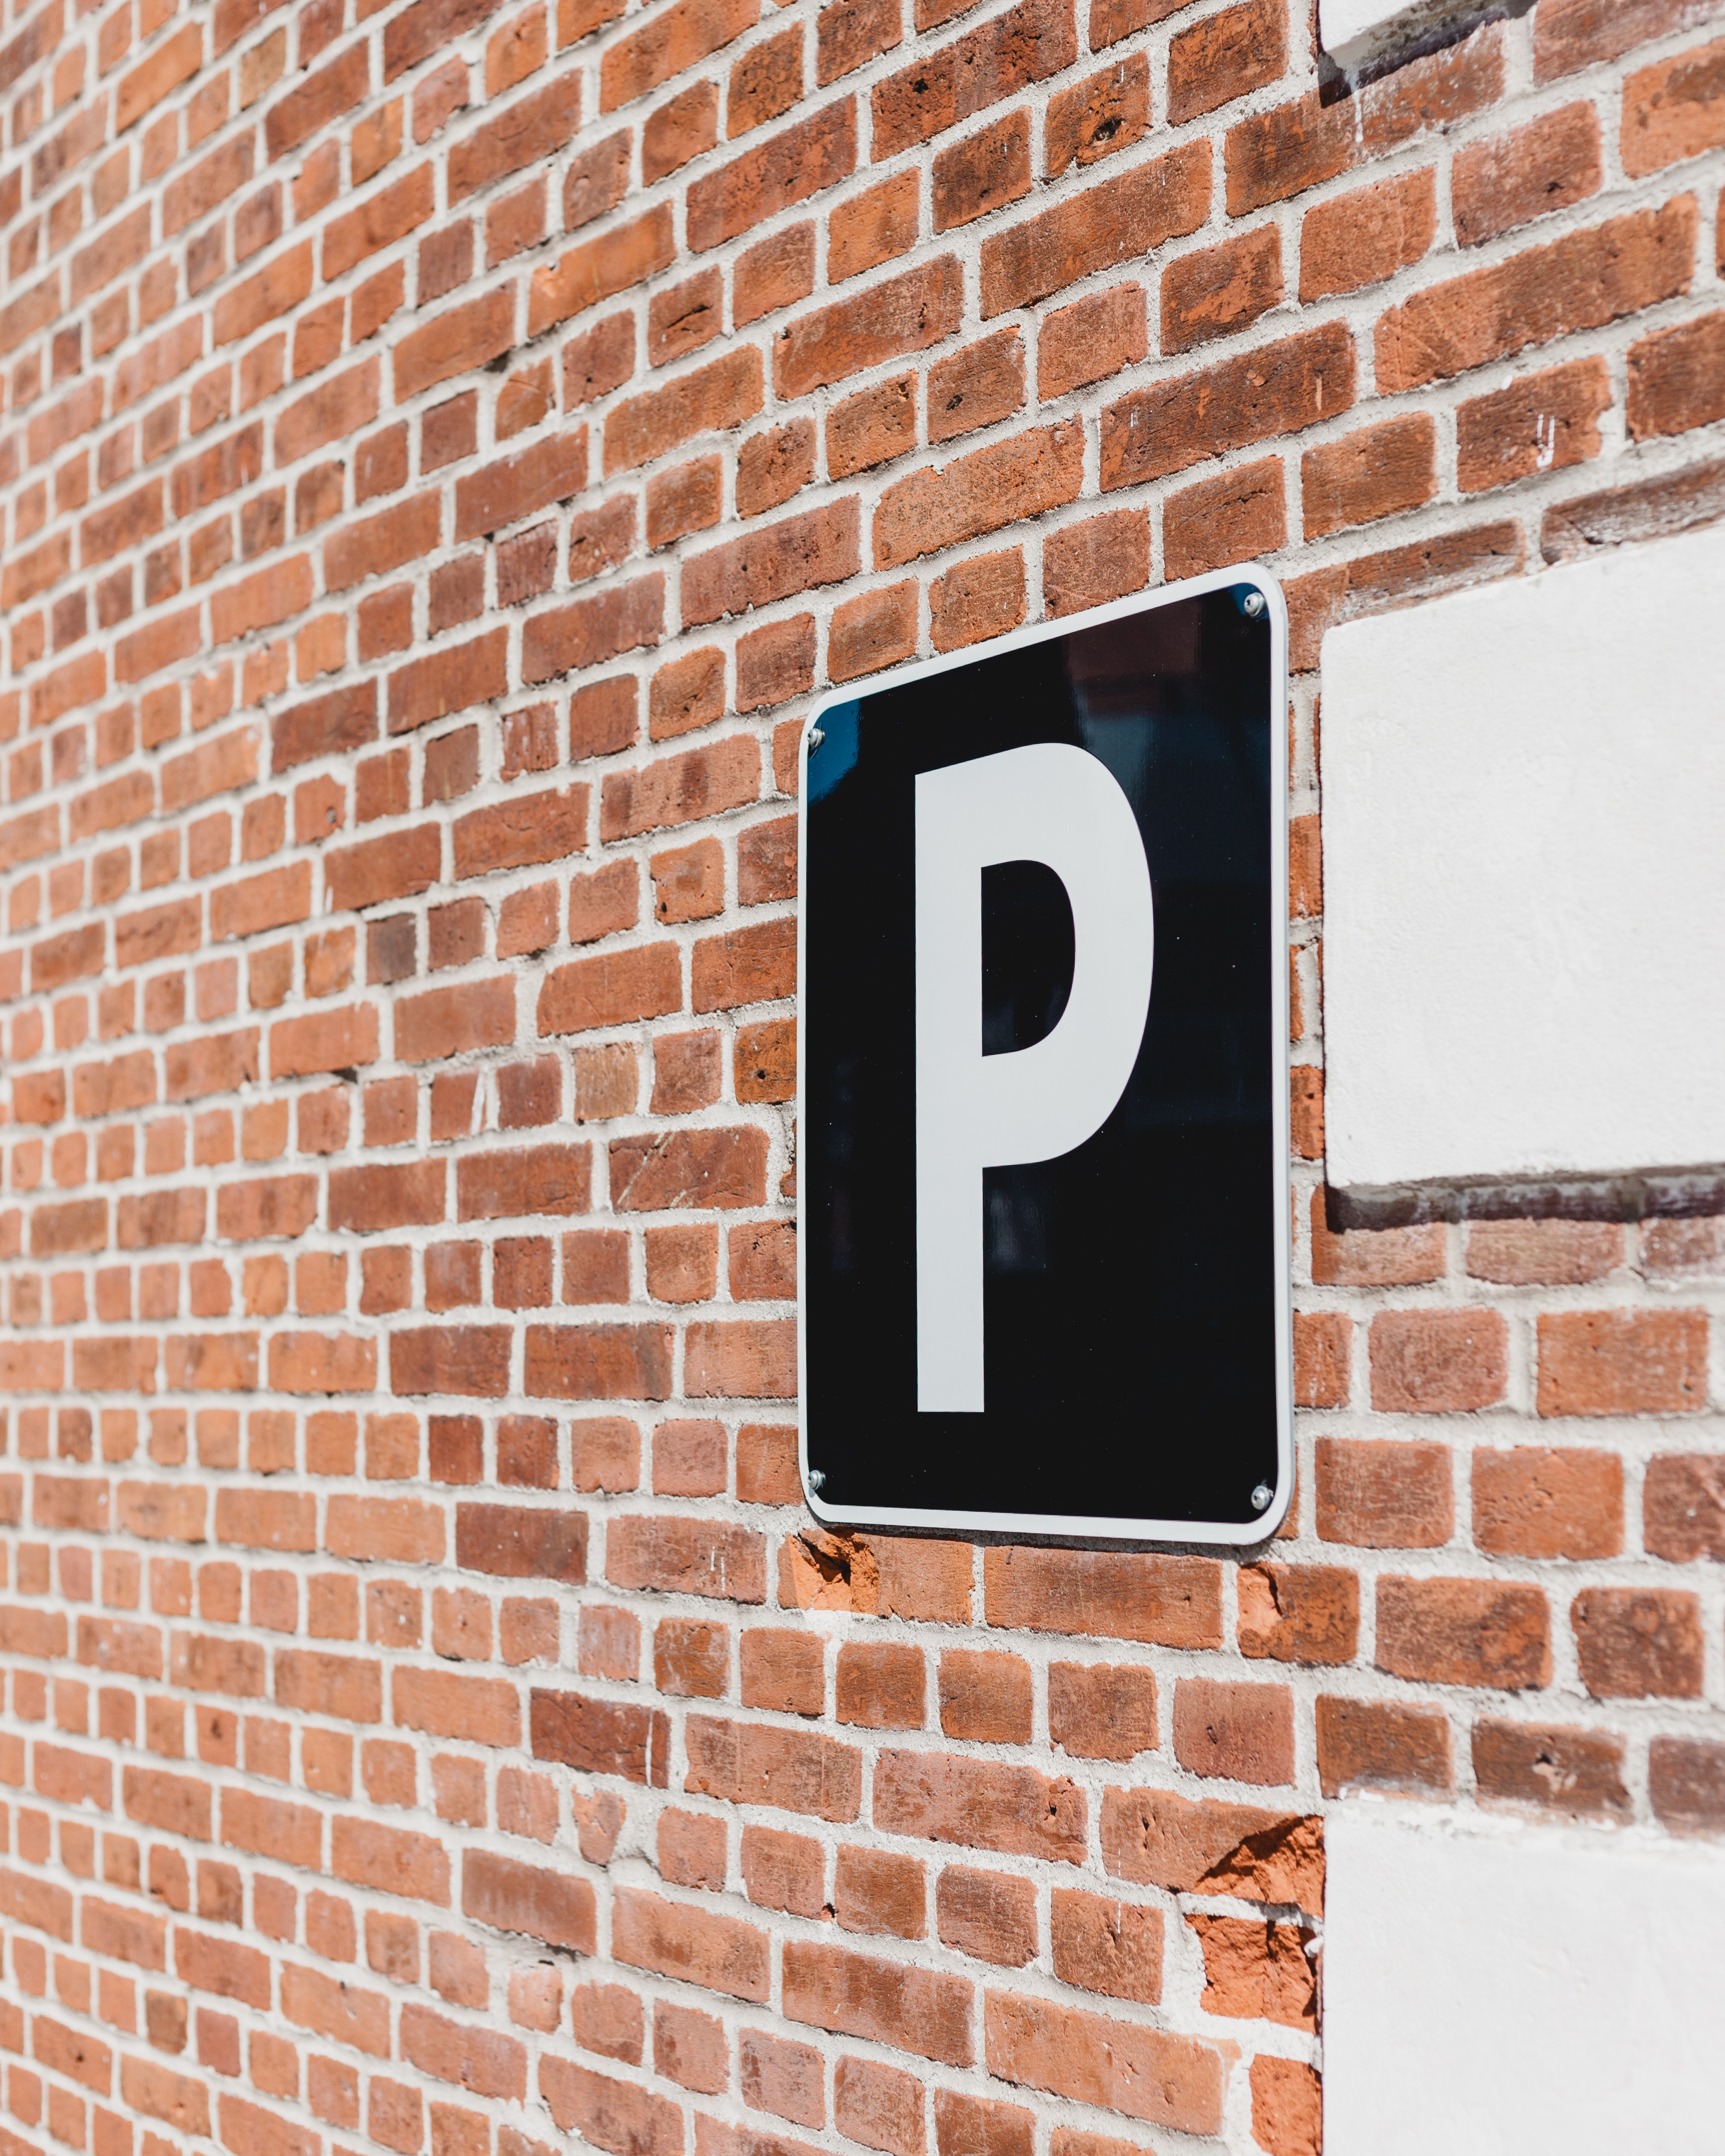 Brisbane Airport Parking Deals How To Find The Cheapest Brisbane Cbd Parking Save Now